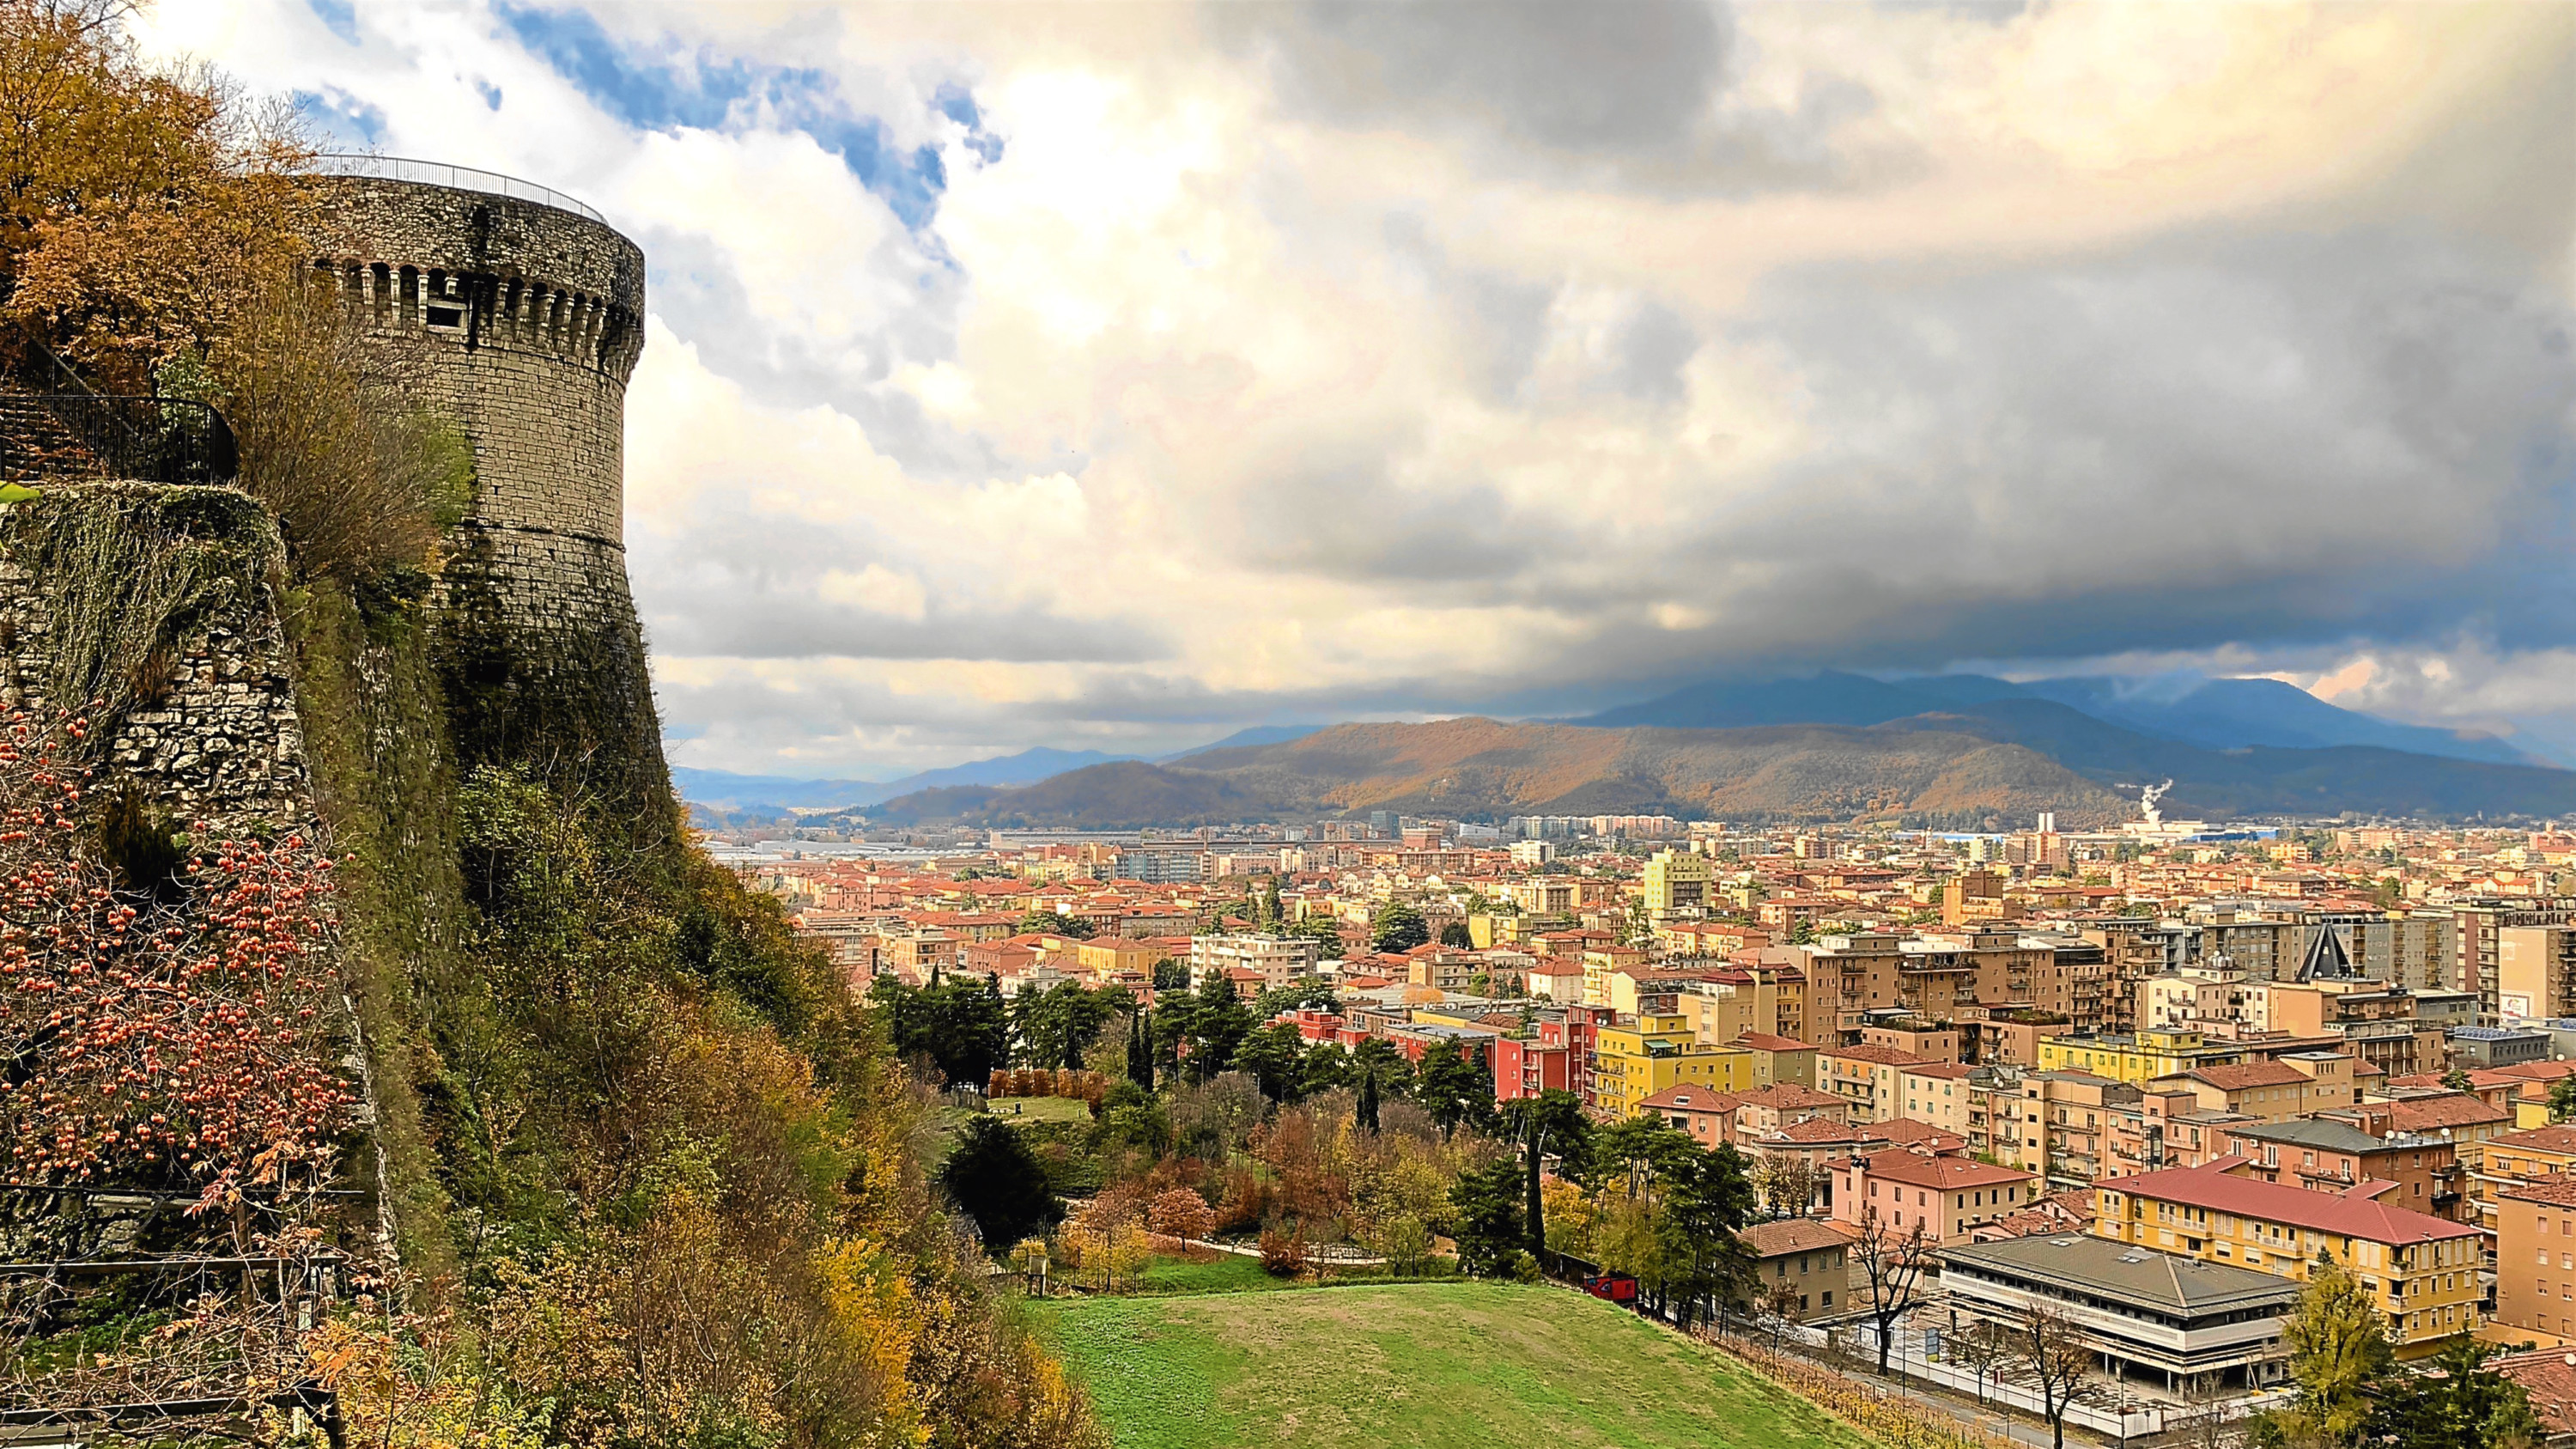 Brescia's hilltop castle overlooks the city and distant hills. Copyright Amy Laughinghouse.